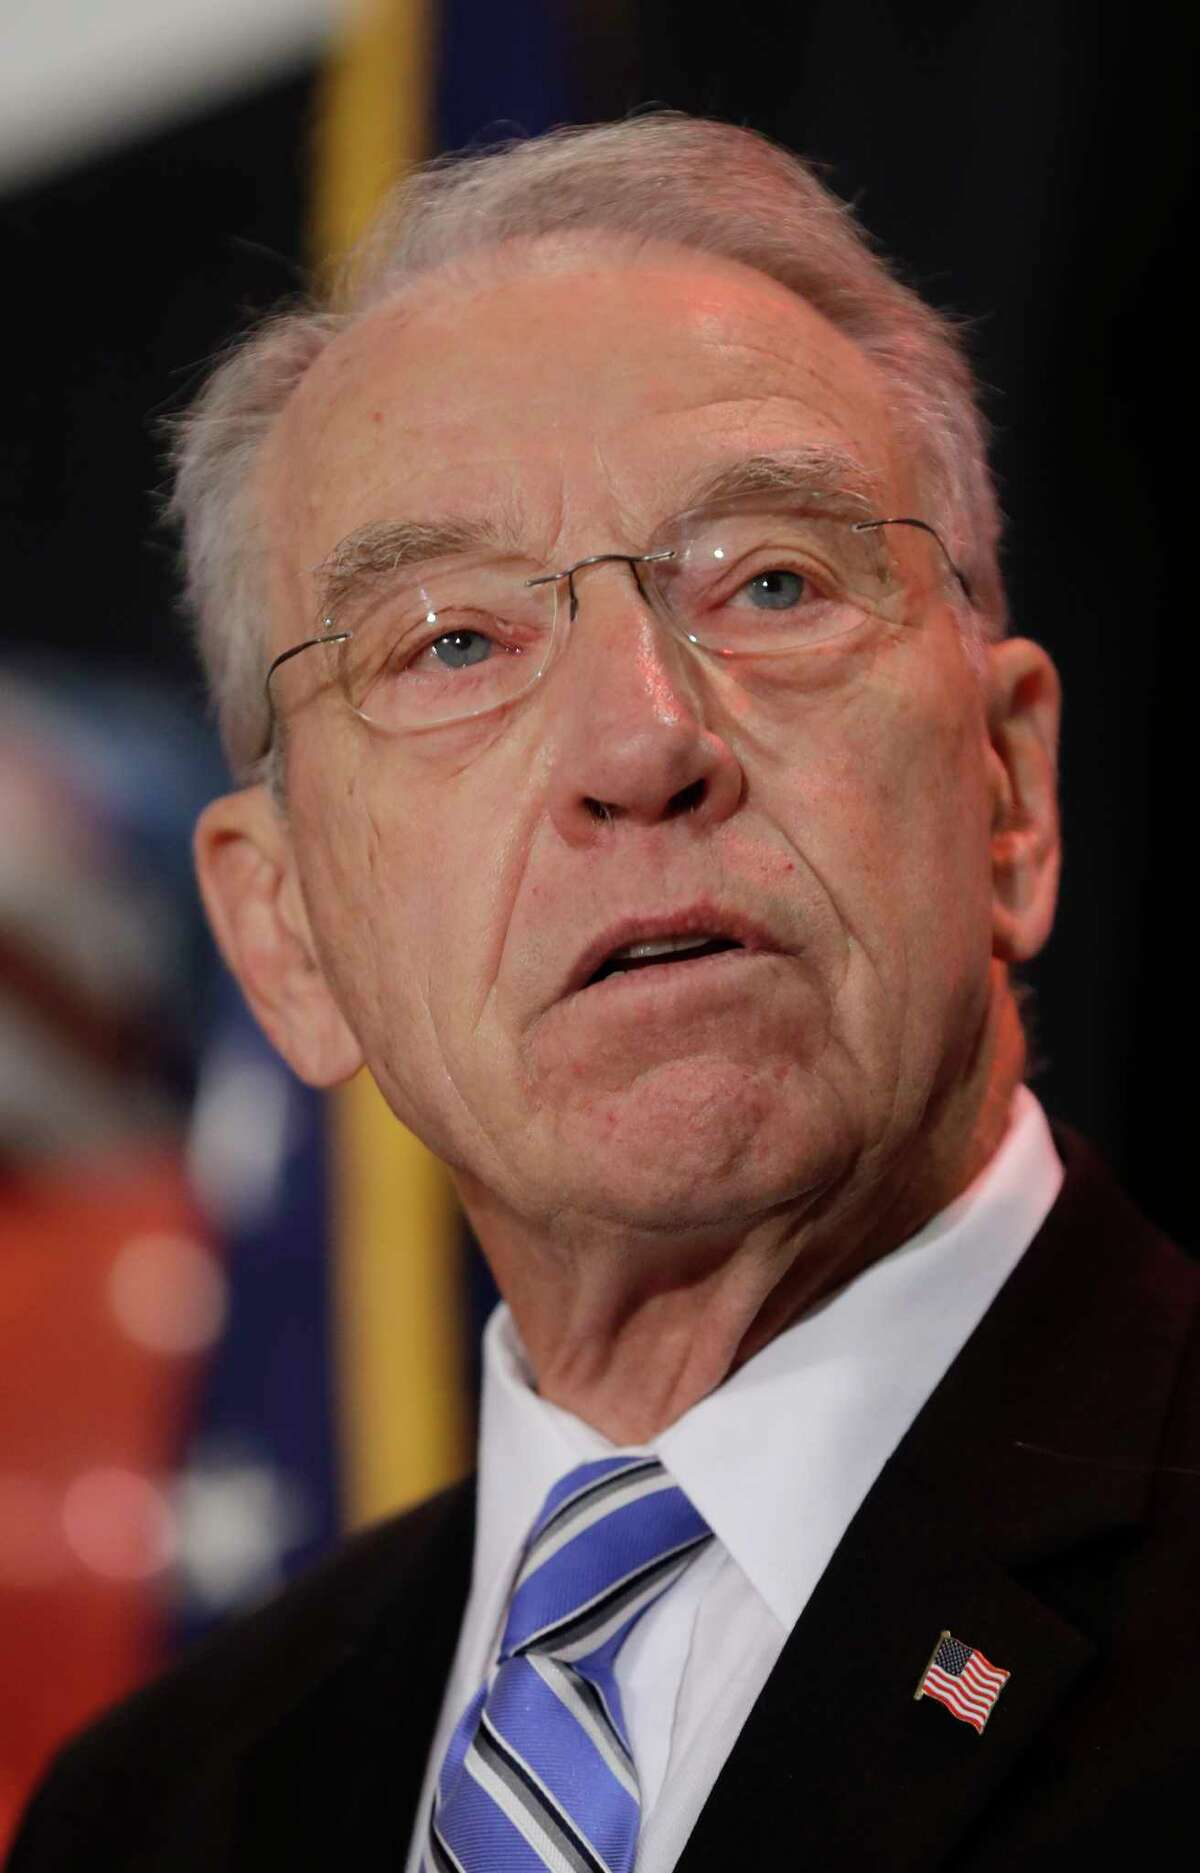 Sen. Charles Grassley, R-Iowa speaks during an election night rally, Tuesday, Nov. 8, 2016, in Des Moines, Iowa. (AP Photo/Charlie Neibergall)